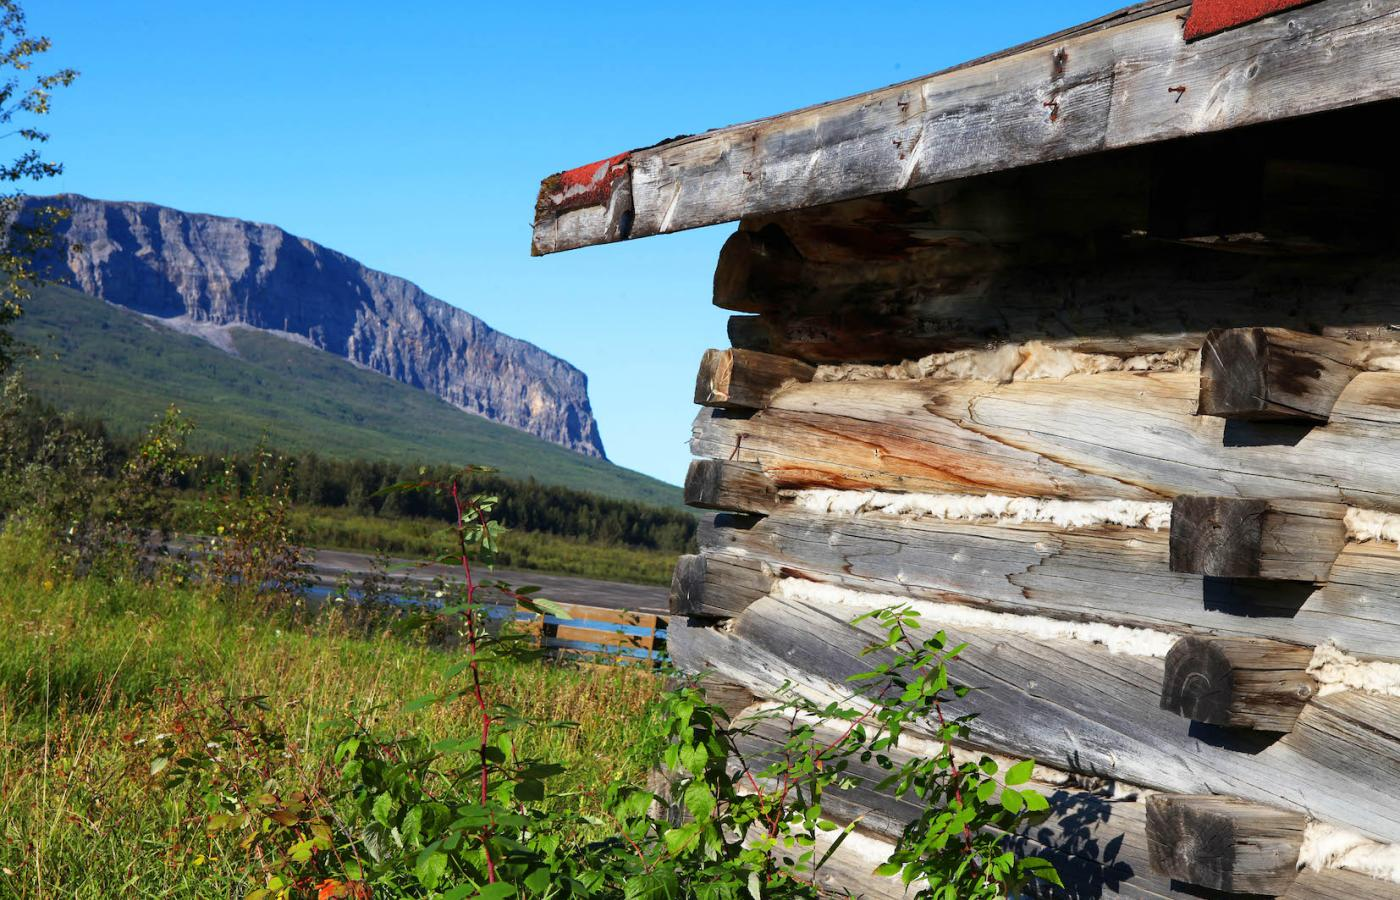 The small village of Nahanni Butte, Northwest Territories